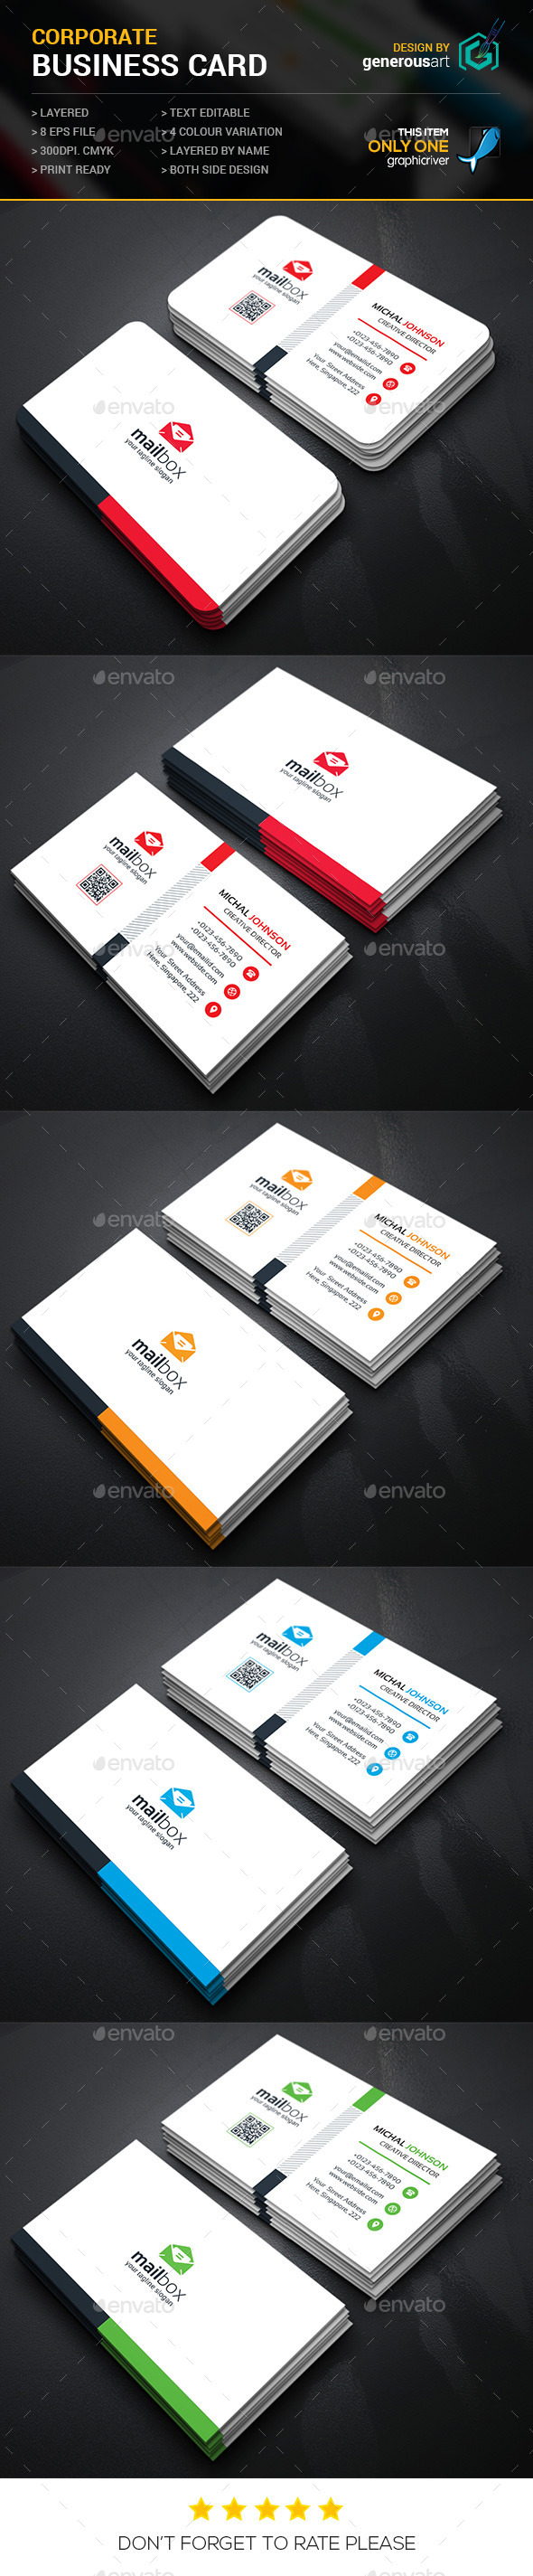 GraphicRiver Mail Box Corporate Business Cards 11895822